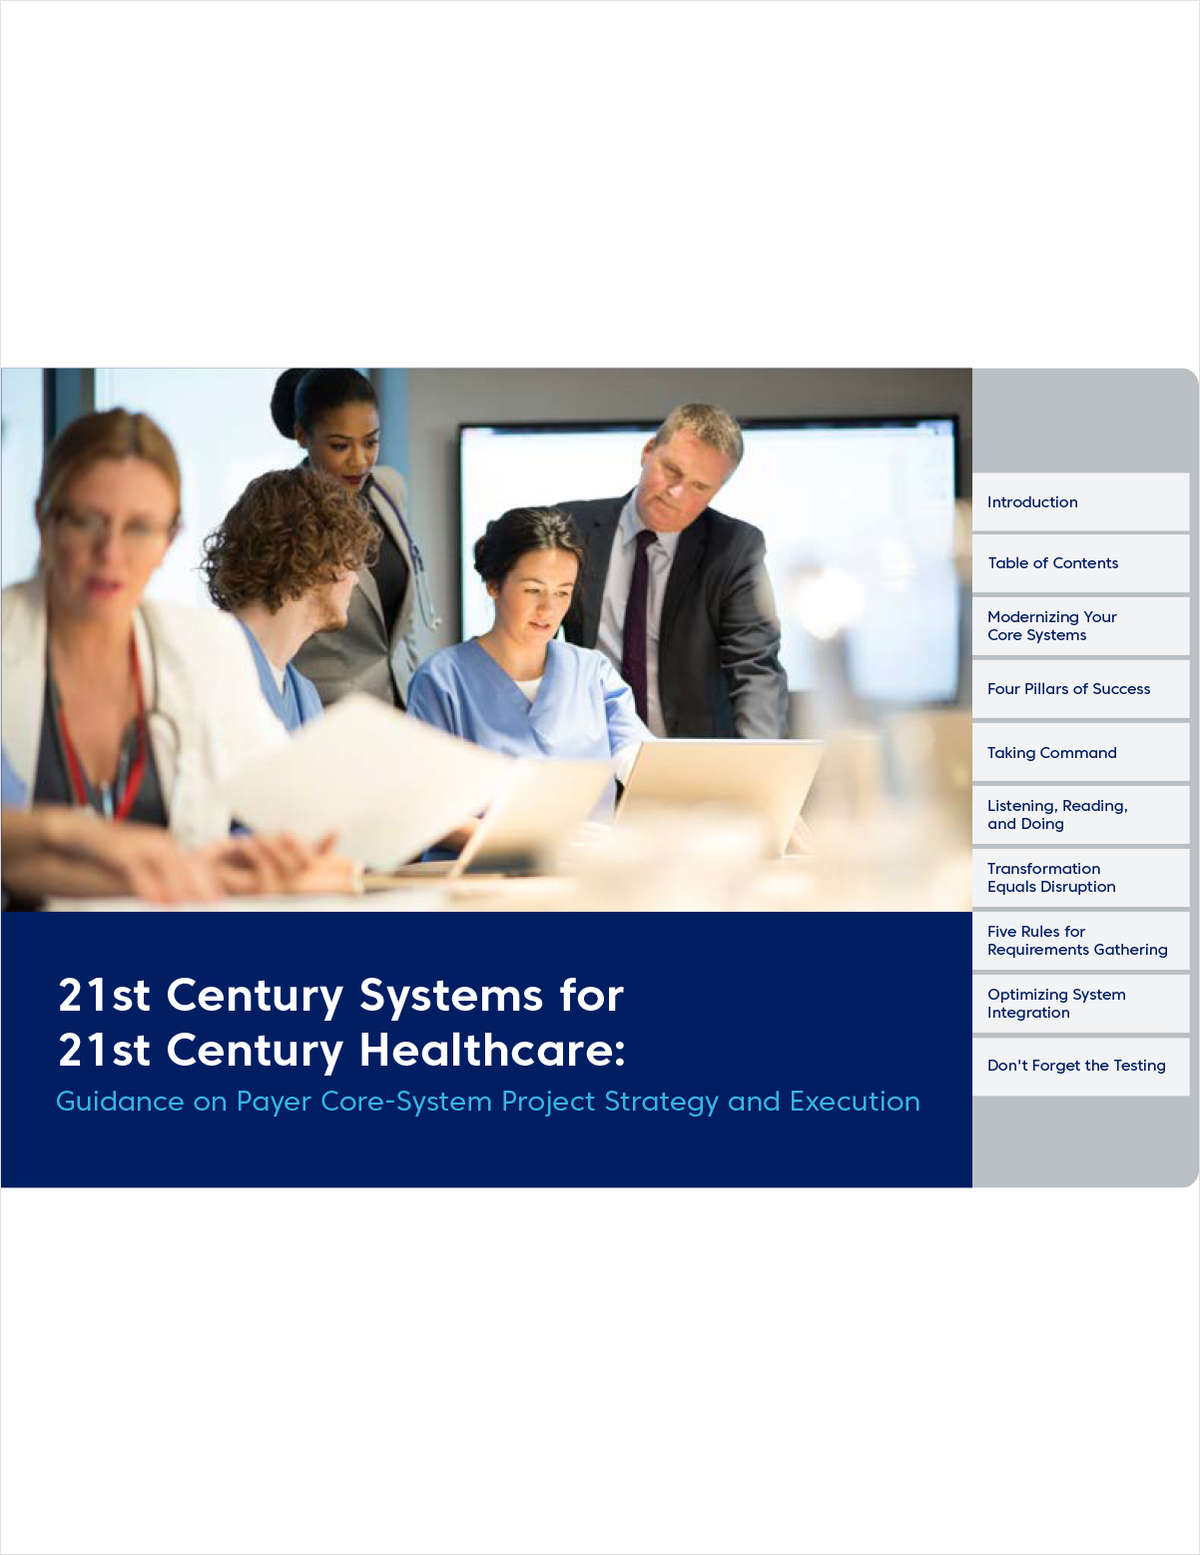 Modernizing Core Payer Systems: Four Pillars of Success